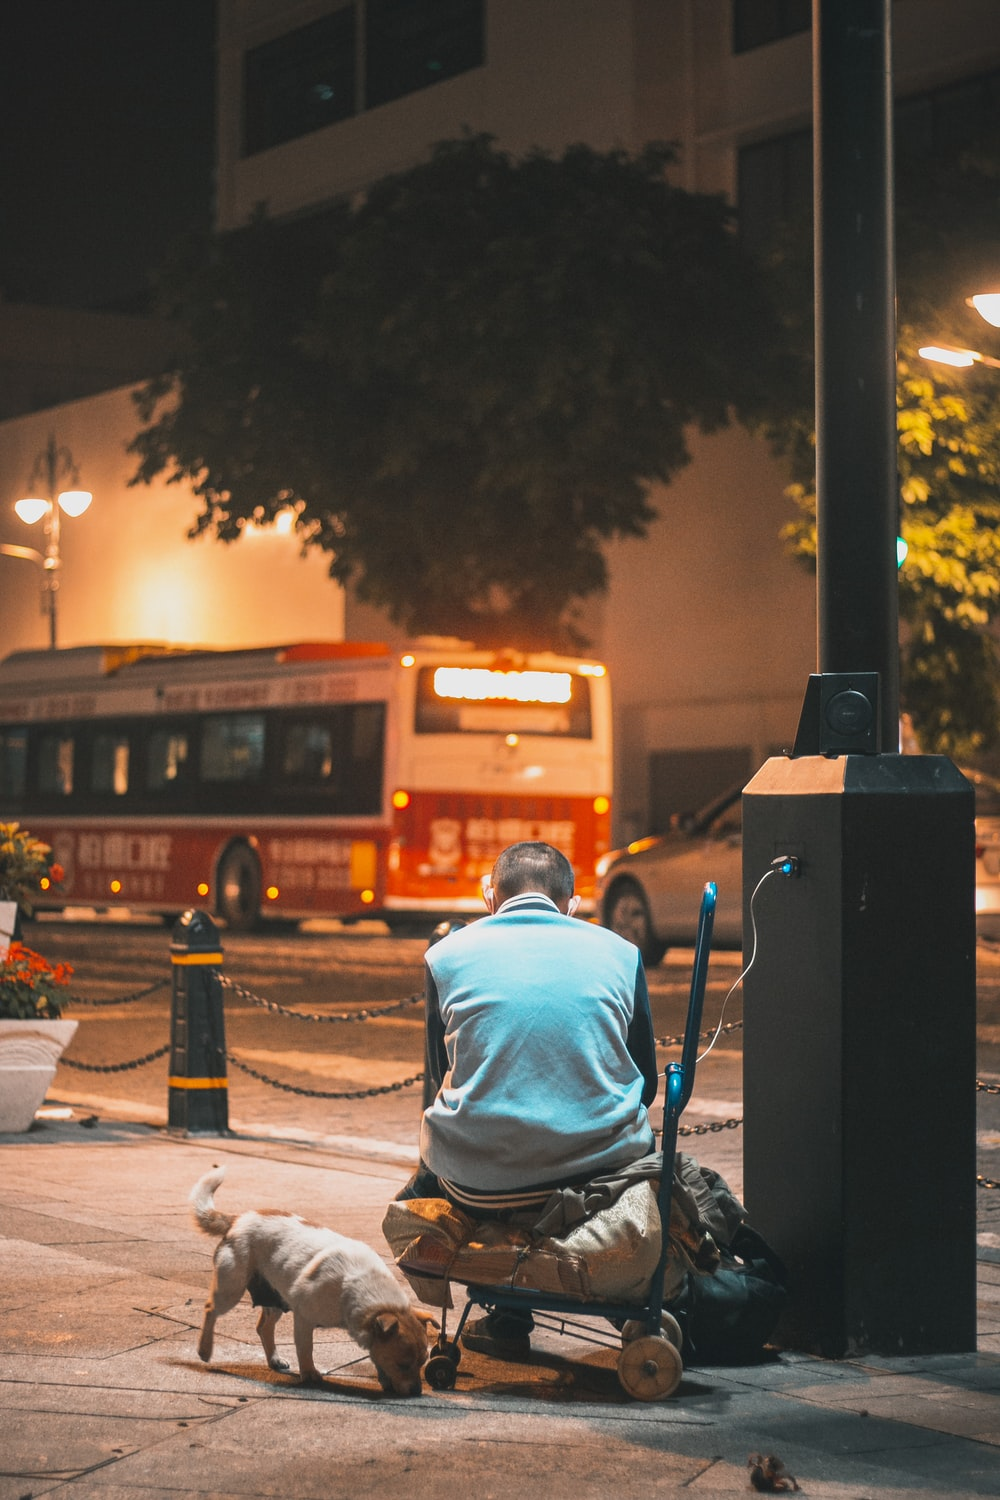 man in blue hoodie sitting on chair near road during night time